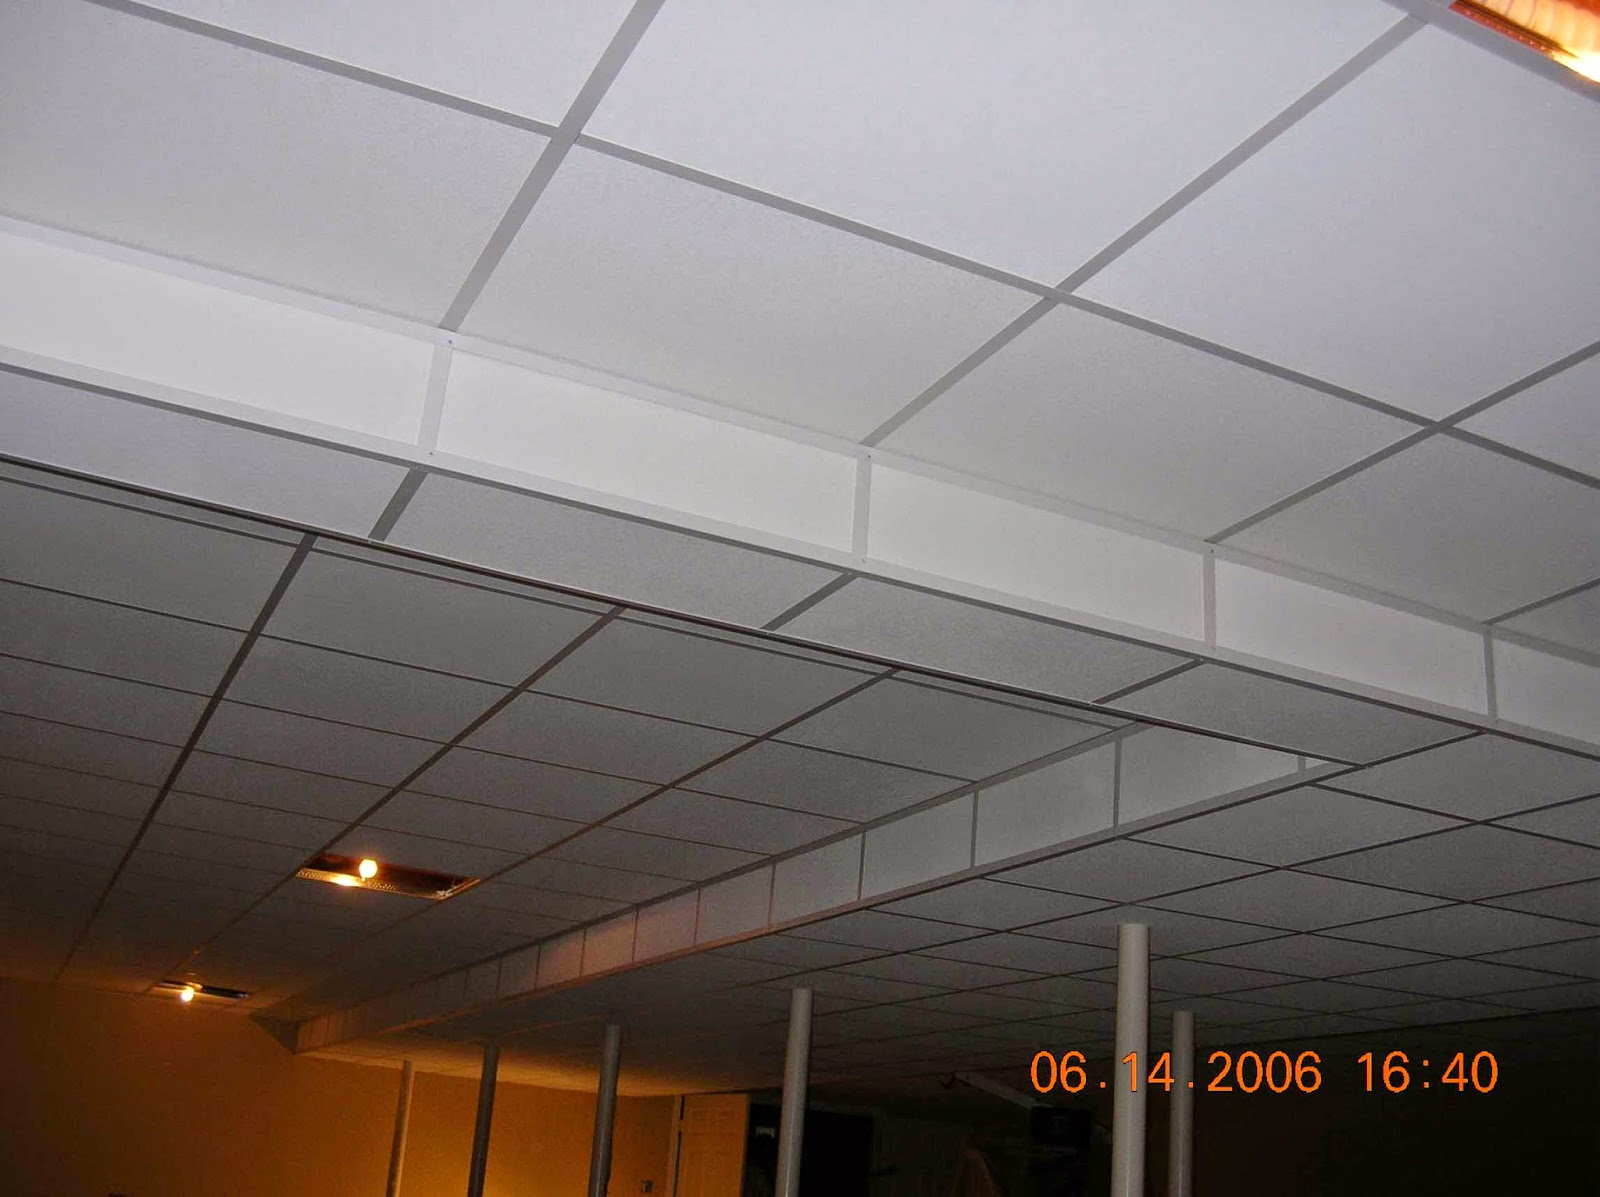 ideas for camoflaging a drop ceiling - Basement Drop Ceiling Ideas Instant Knowledge